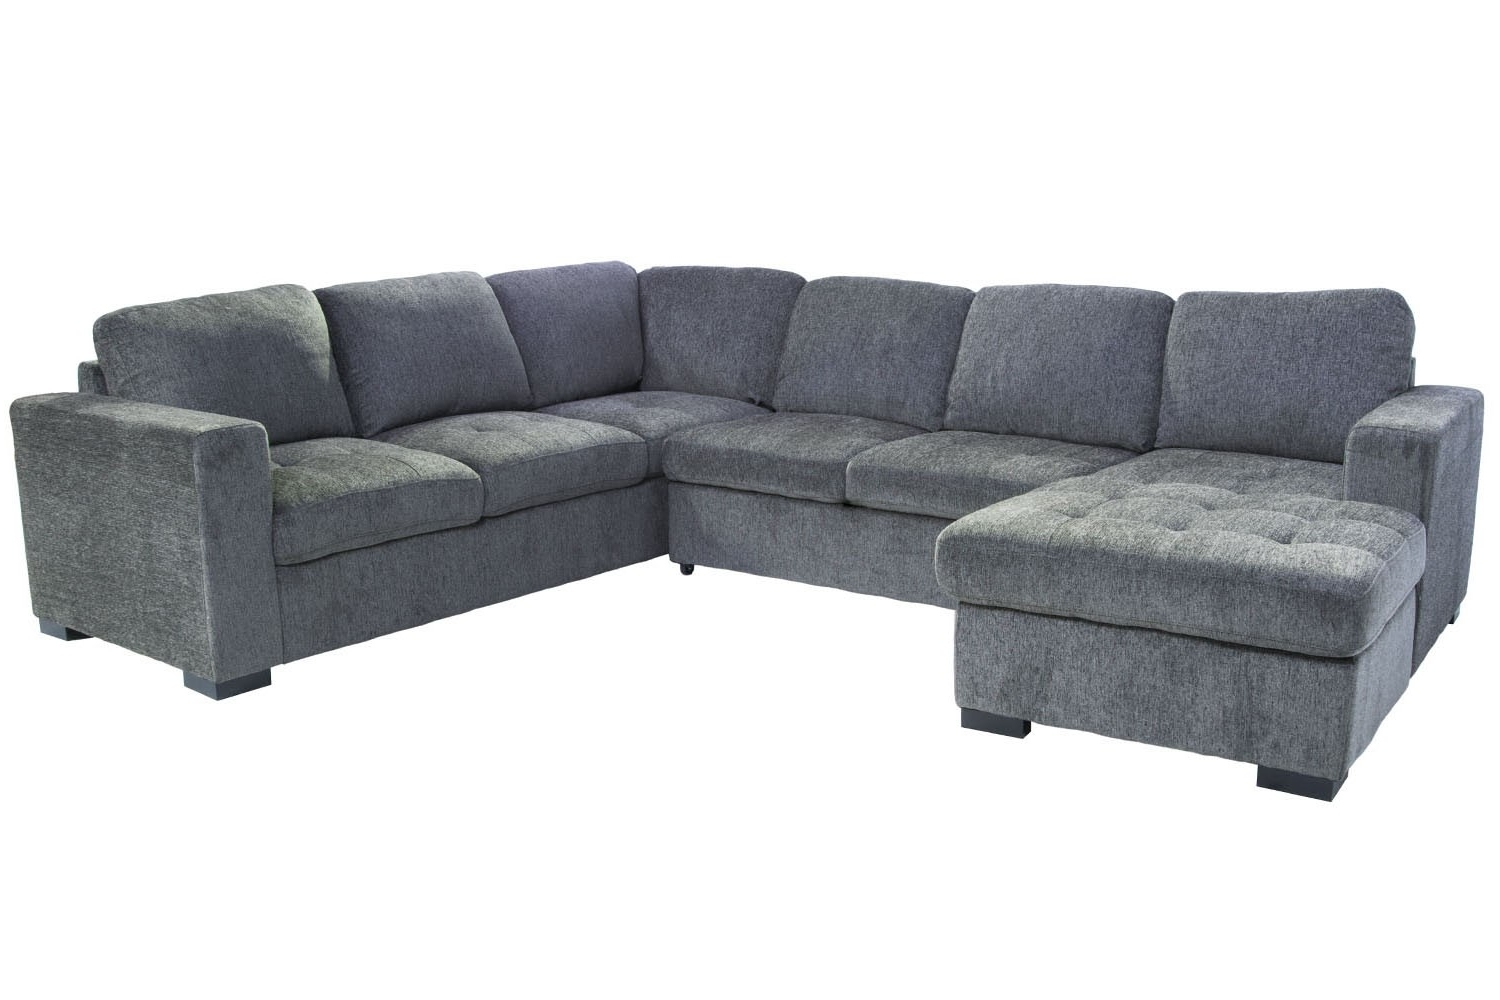 Right Facing Chaise Sectionals Regarding Most Current Claire 3 Piece Left Facing Chaise Sectional (View 11 of 15)